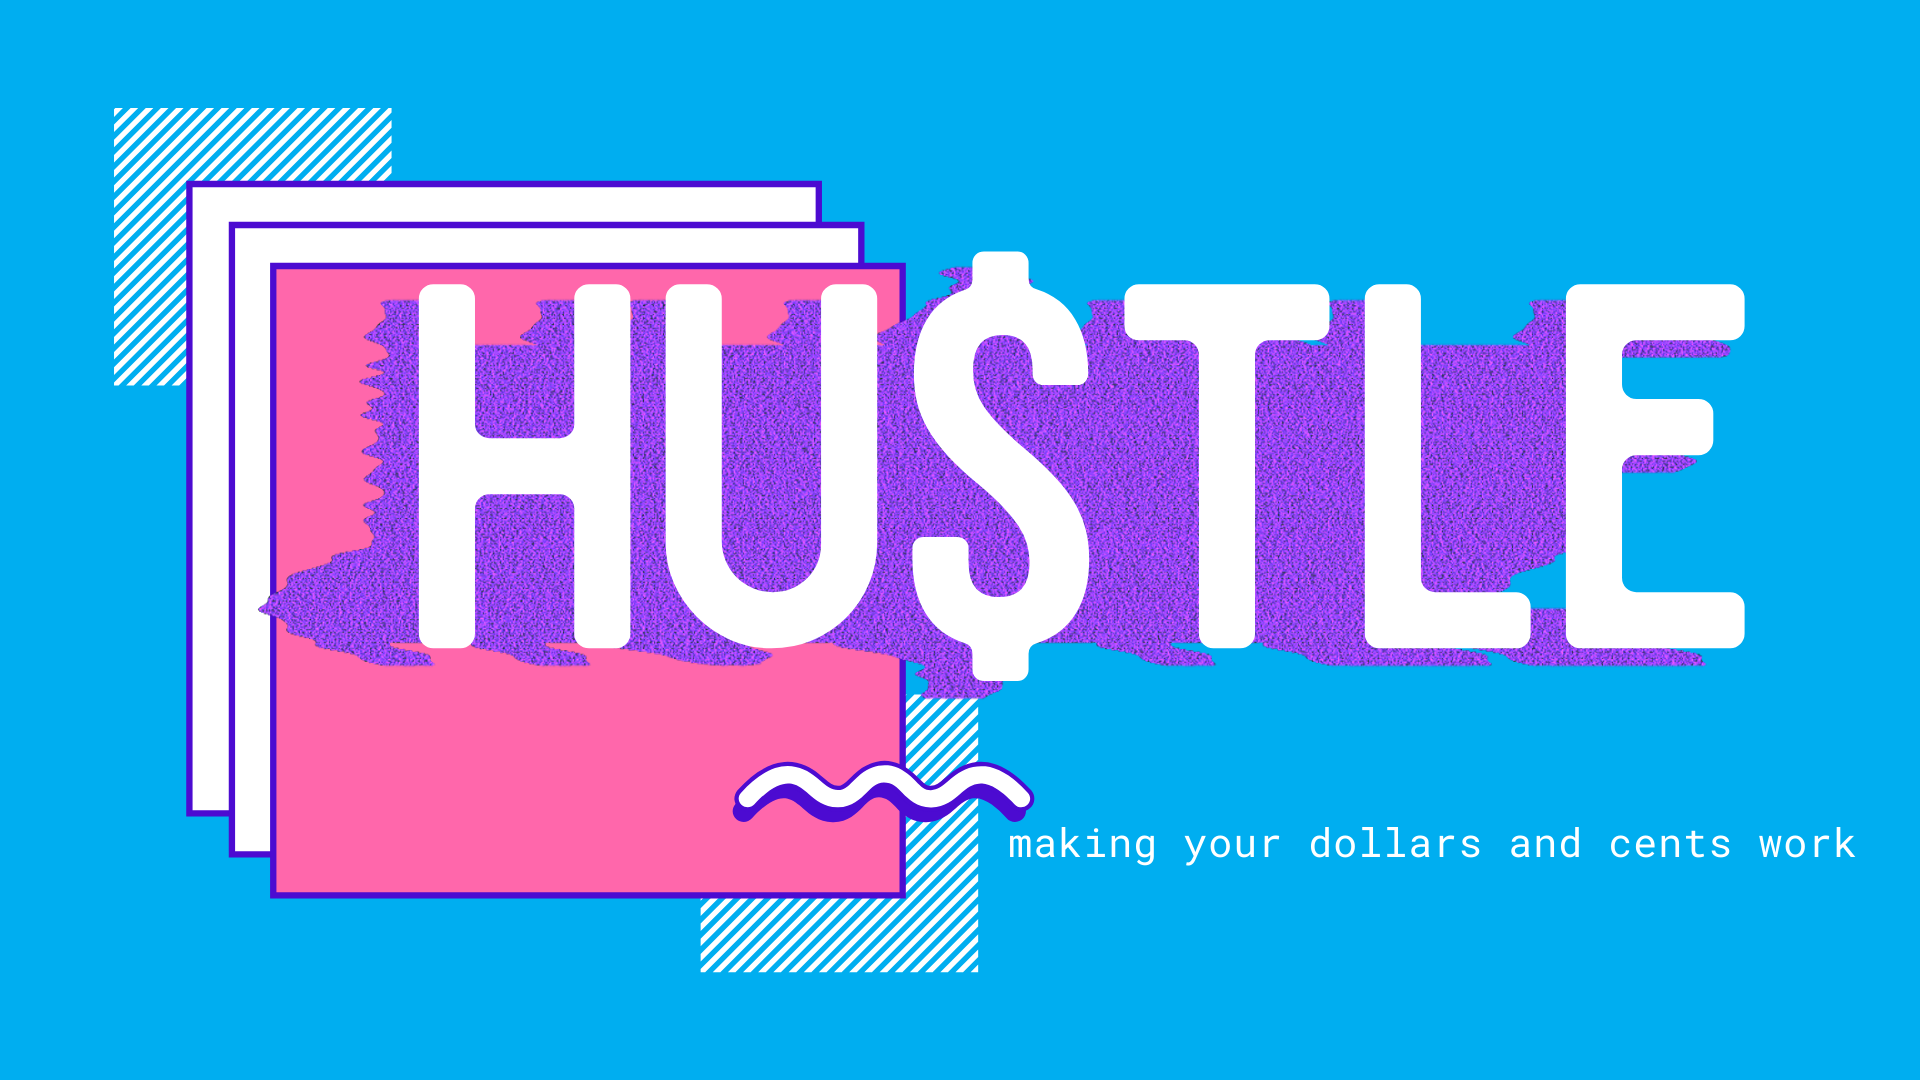 hustle-series-HU$TLE-graphic-idea-sermon-money